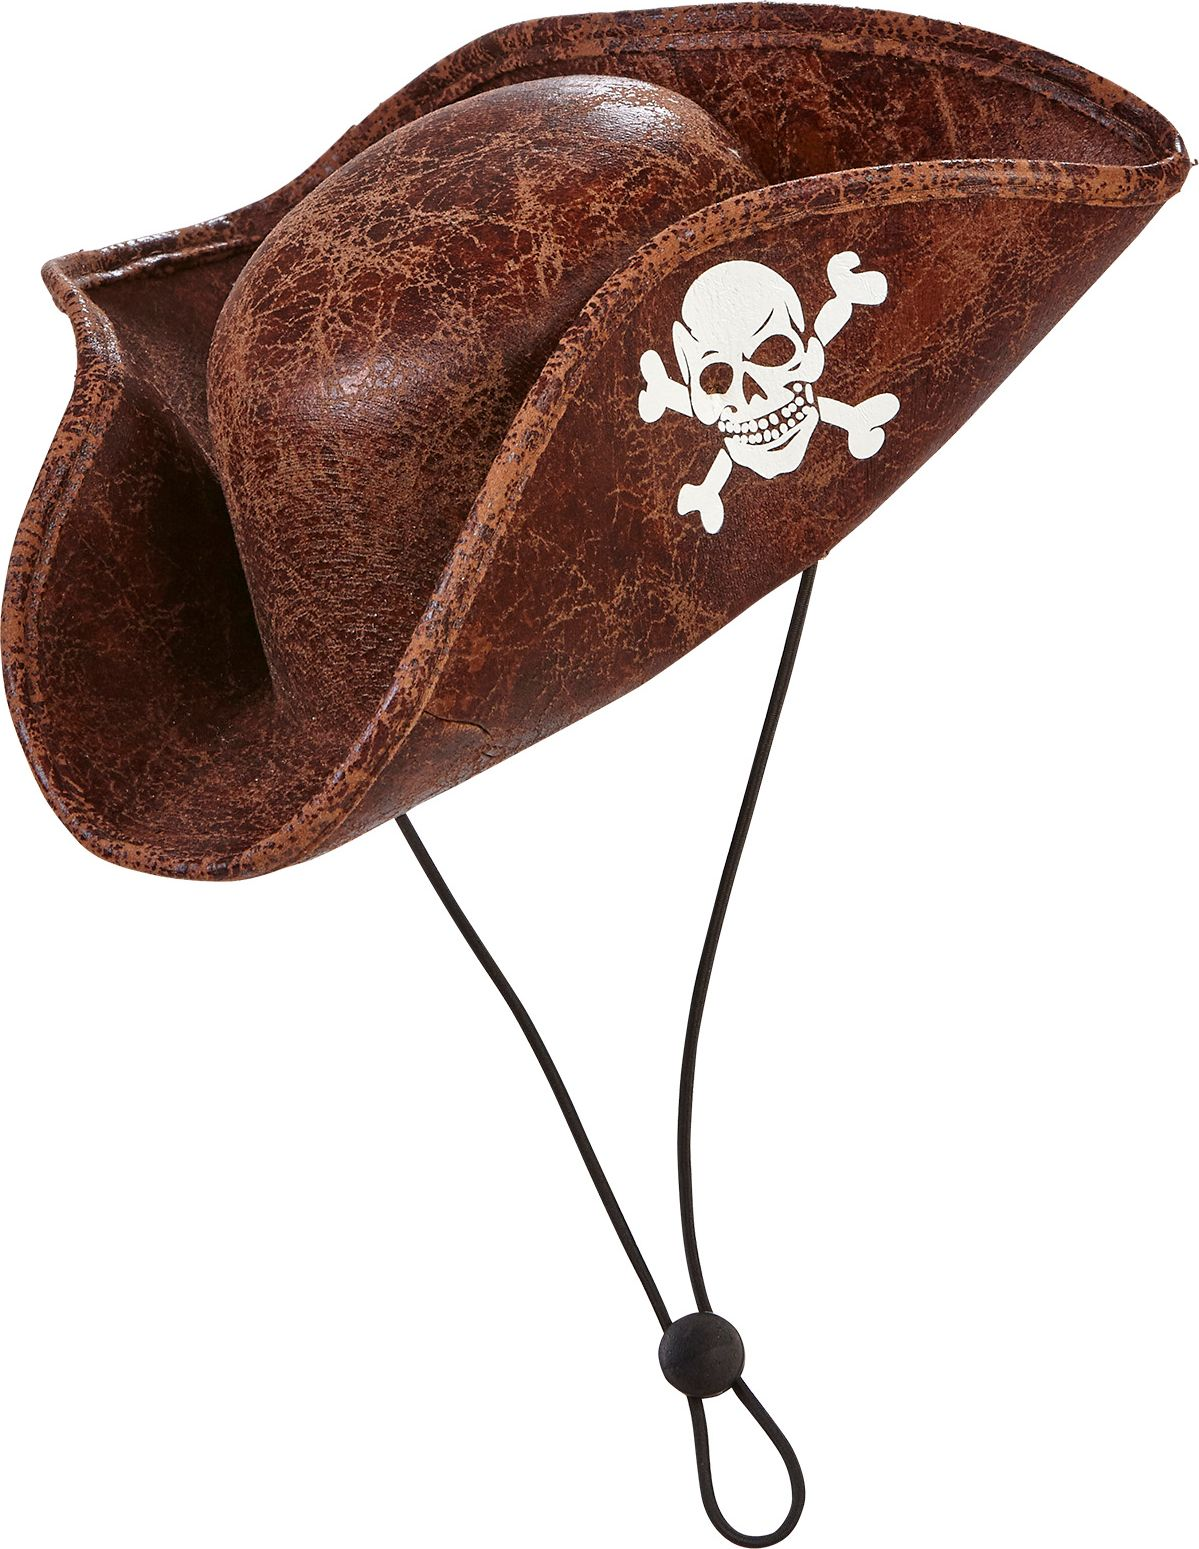 Lederlook piraten tricorn